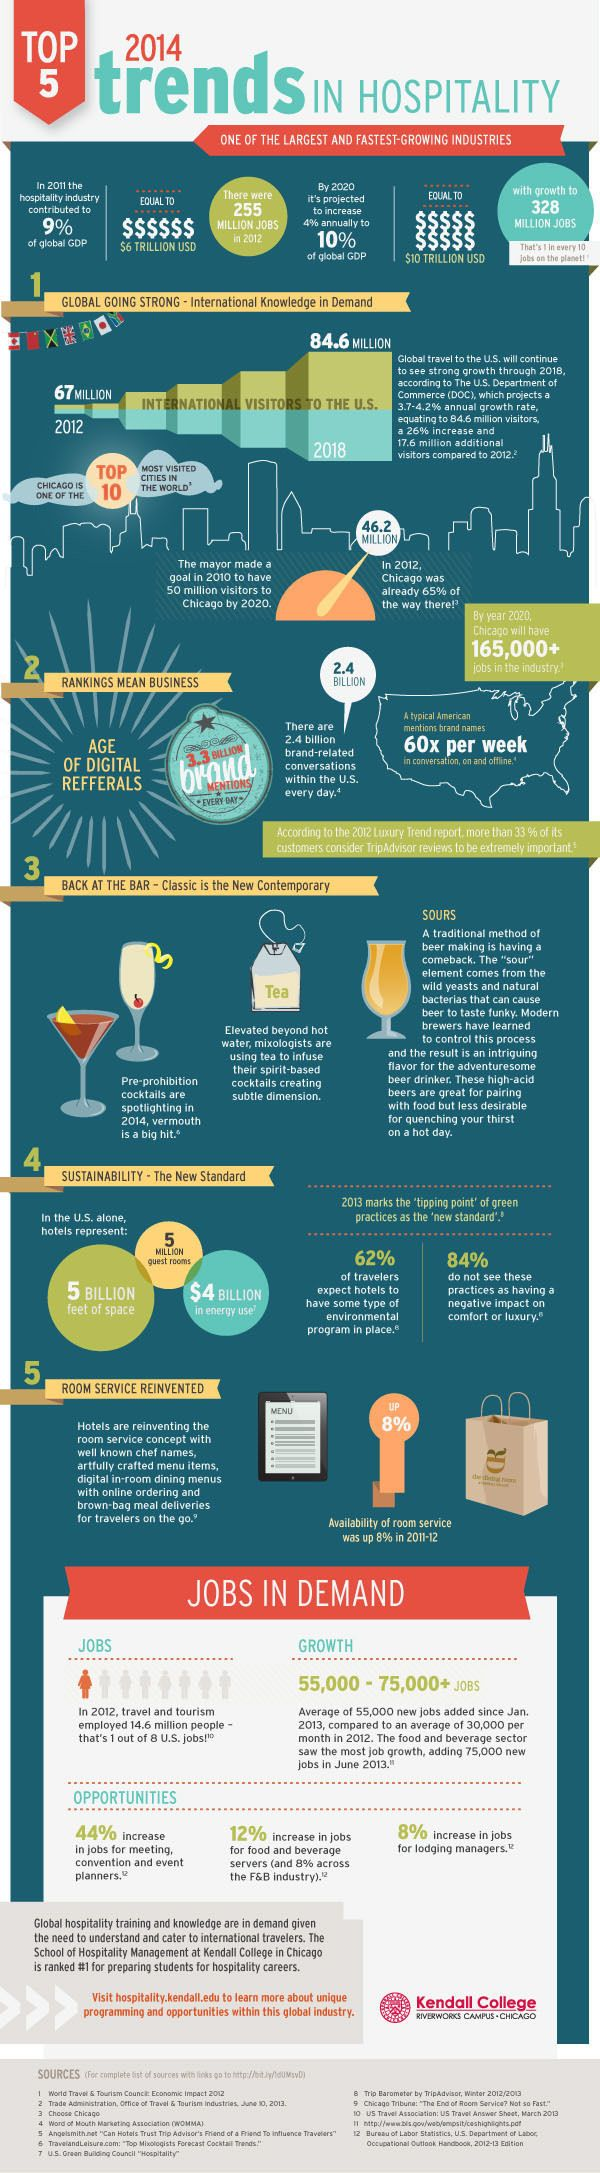 Top 5 Trends in #Hospitality for 2014 via @HotelOnlineNews #infographic